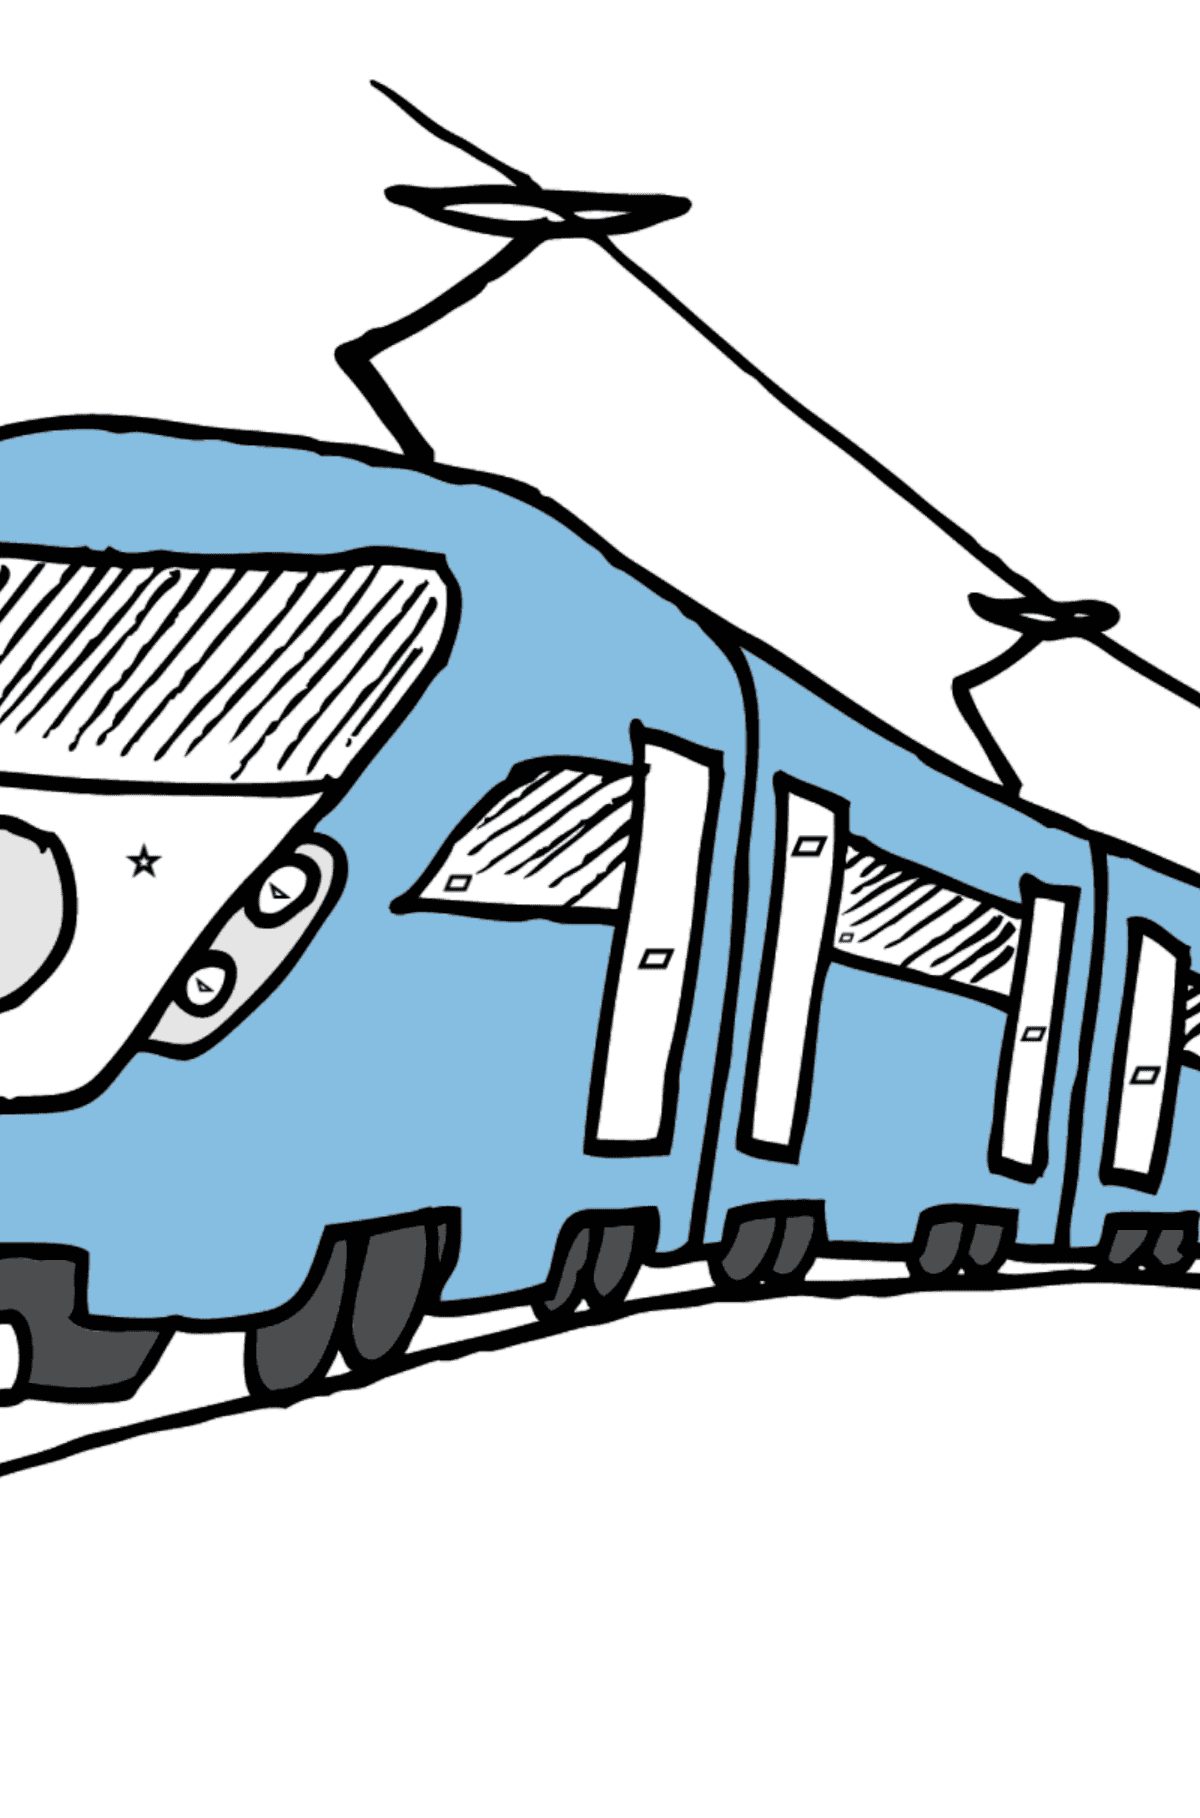 Coloring Page - A Passenger Train - Coloring by Geometric Shapes for Kids